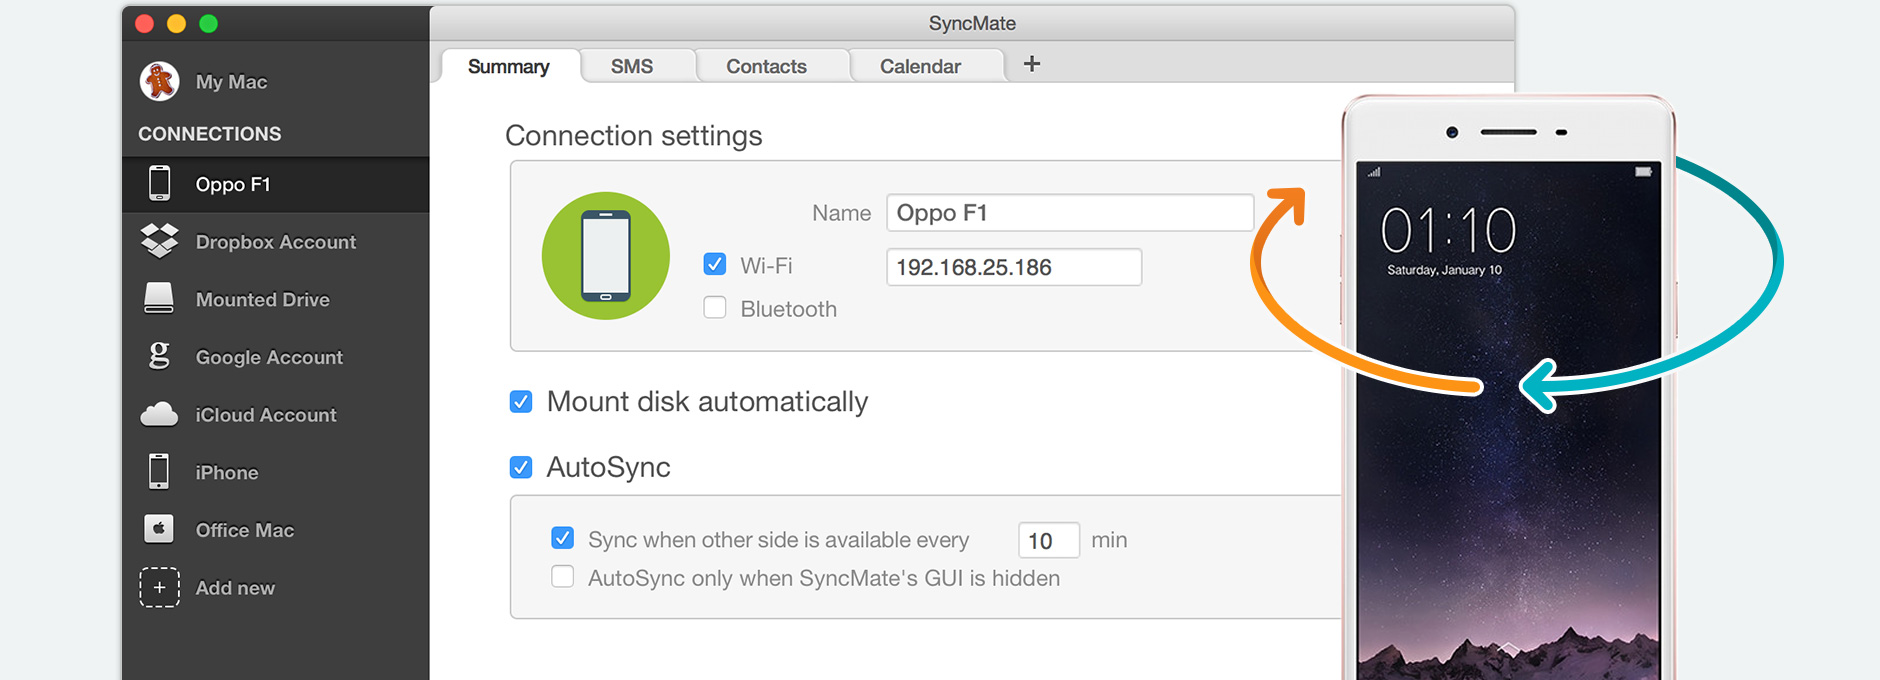 Synchronize Oppo Mac: sync Oppo phone with Mac using SyncMate